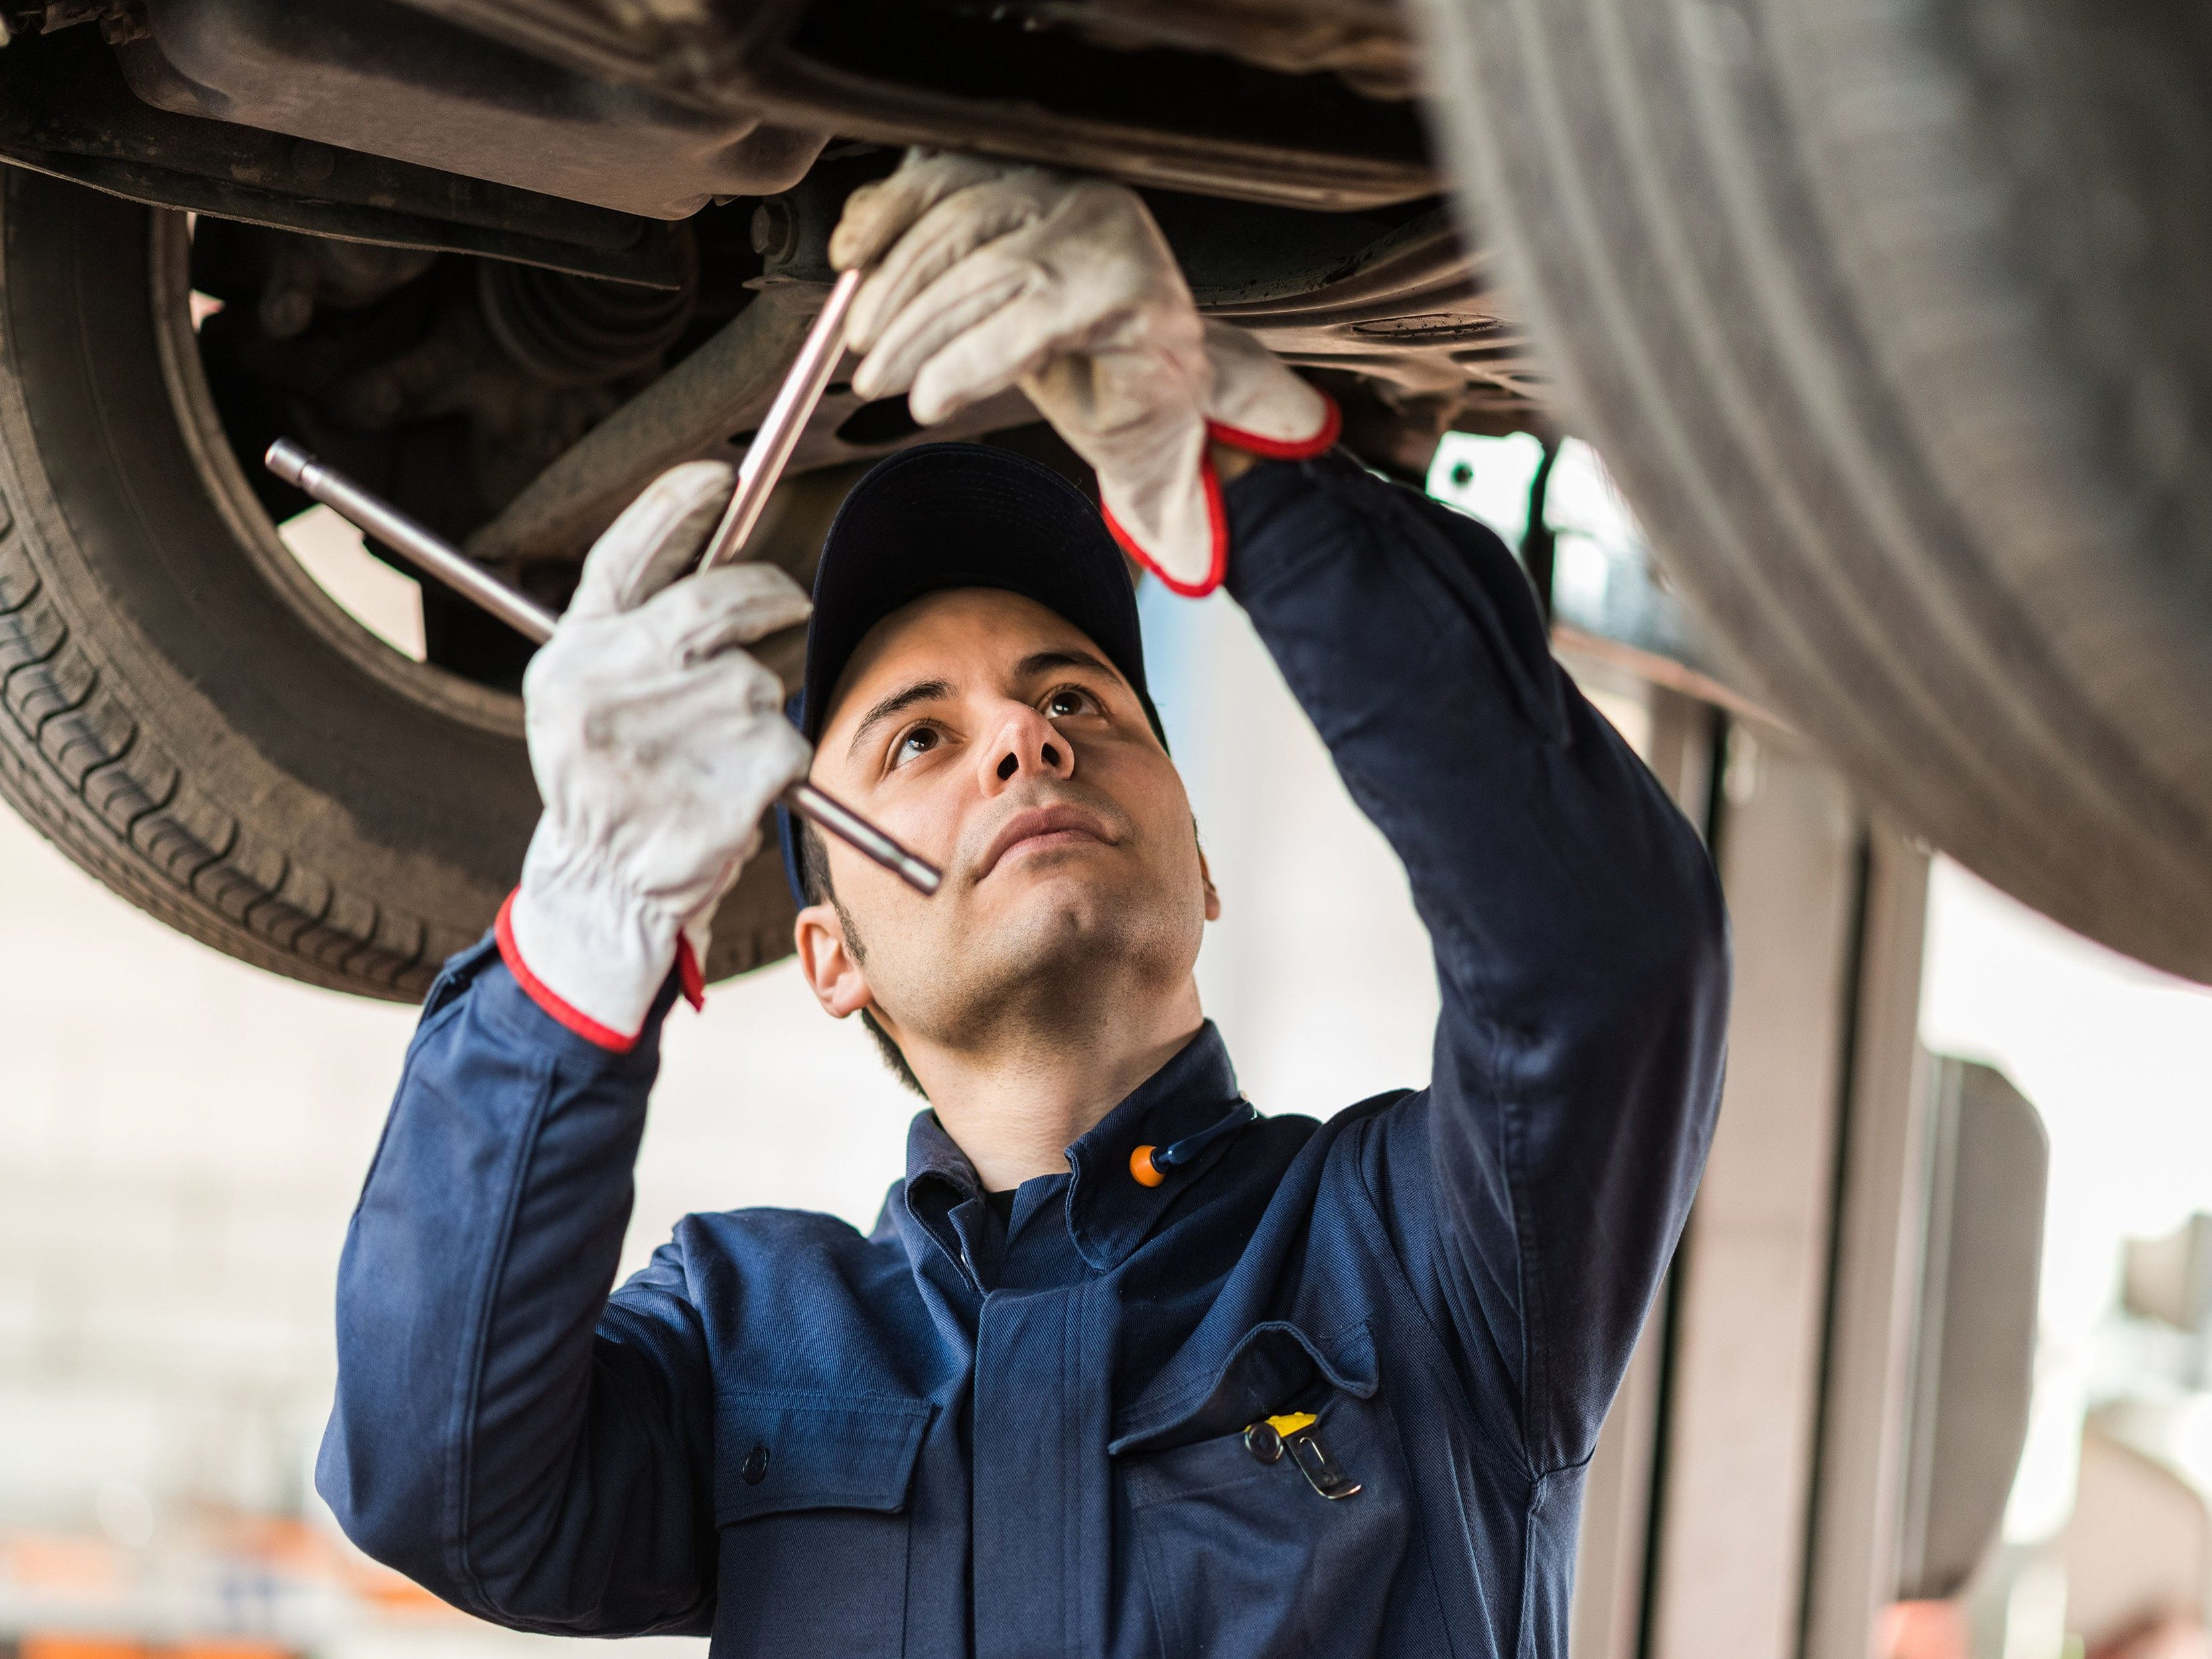 4. Have Your Car Thoroughly Inspected